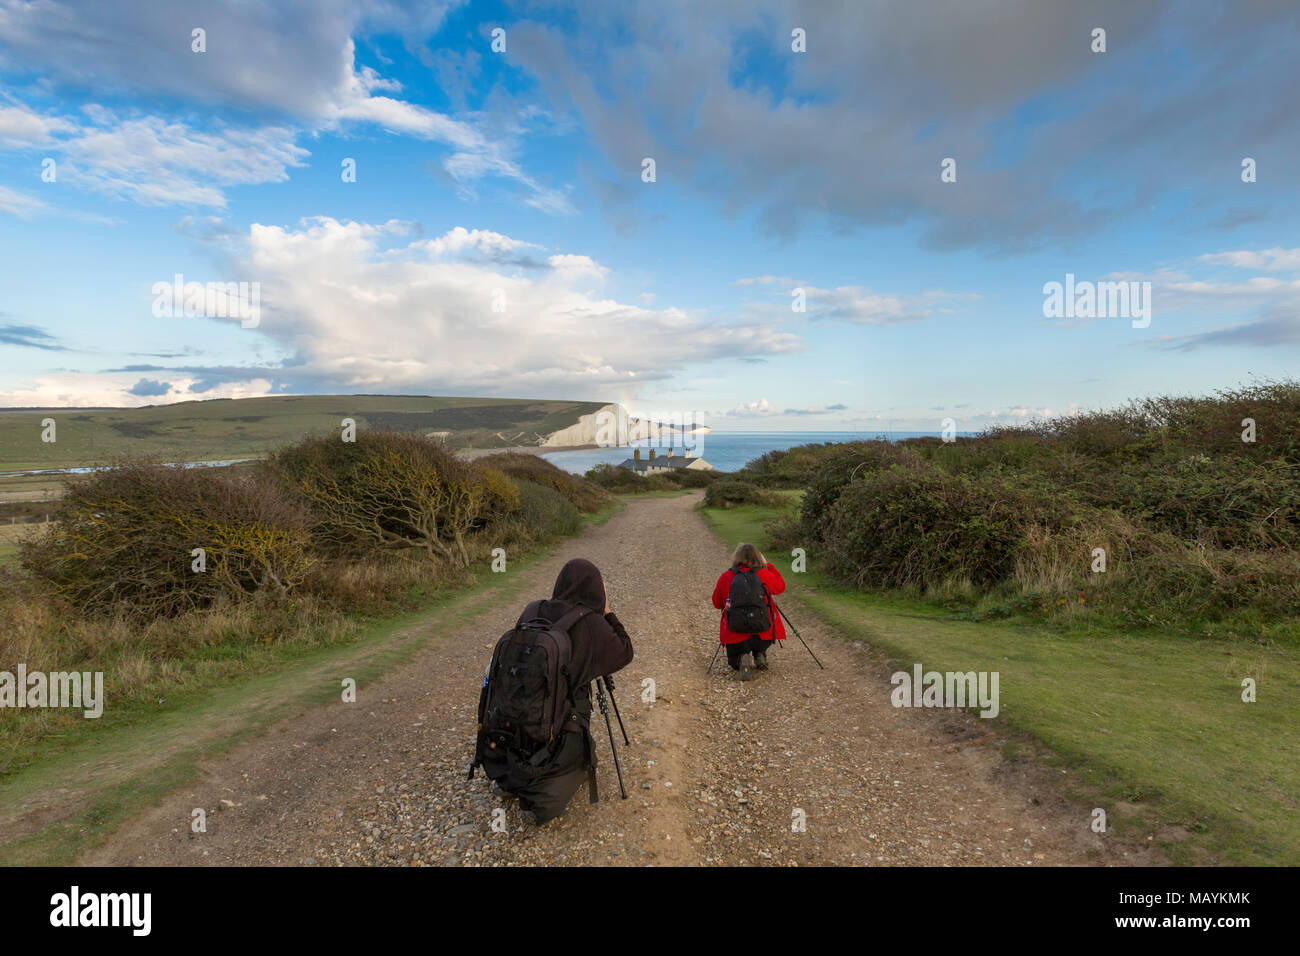 Two photographers with tripods at Seaford photographing the classic view of the Seven Sisters chalk cliffs on the South Downs Way, East Sussex, UK. Stock Photo